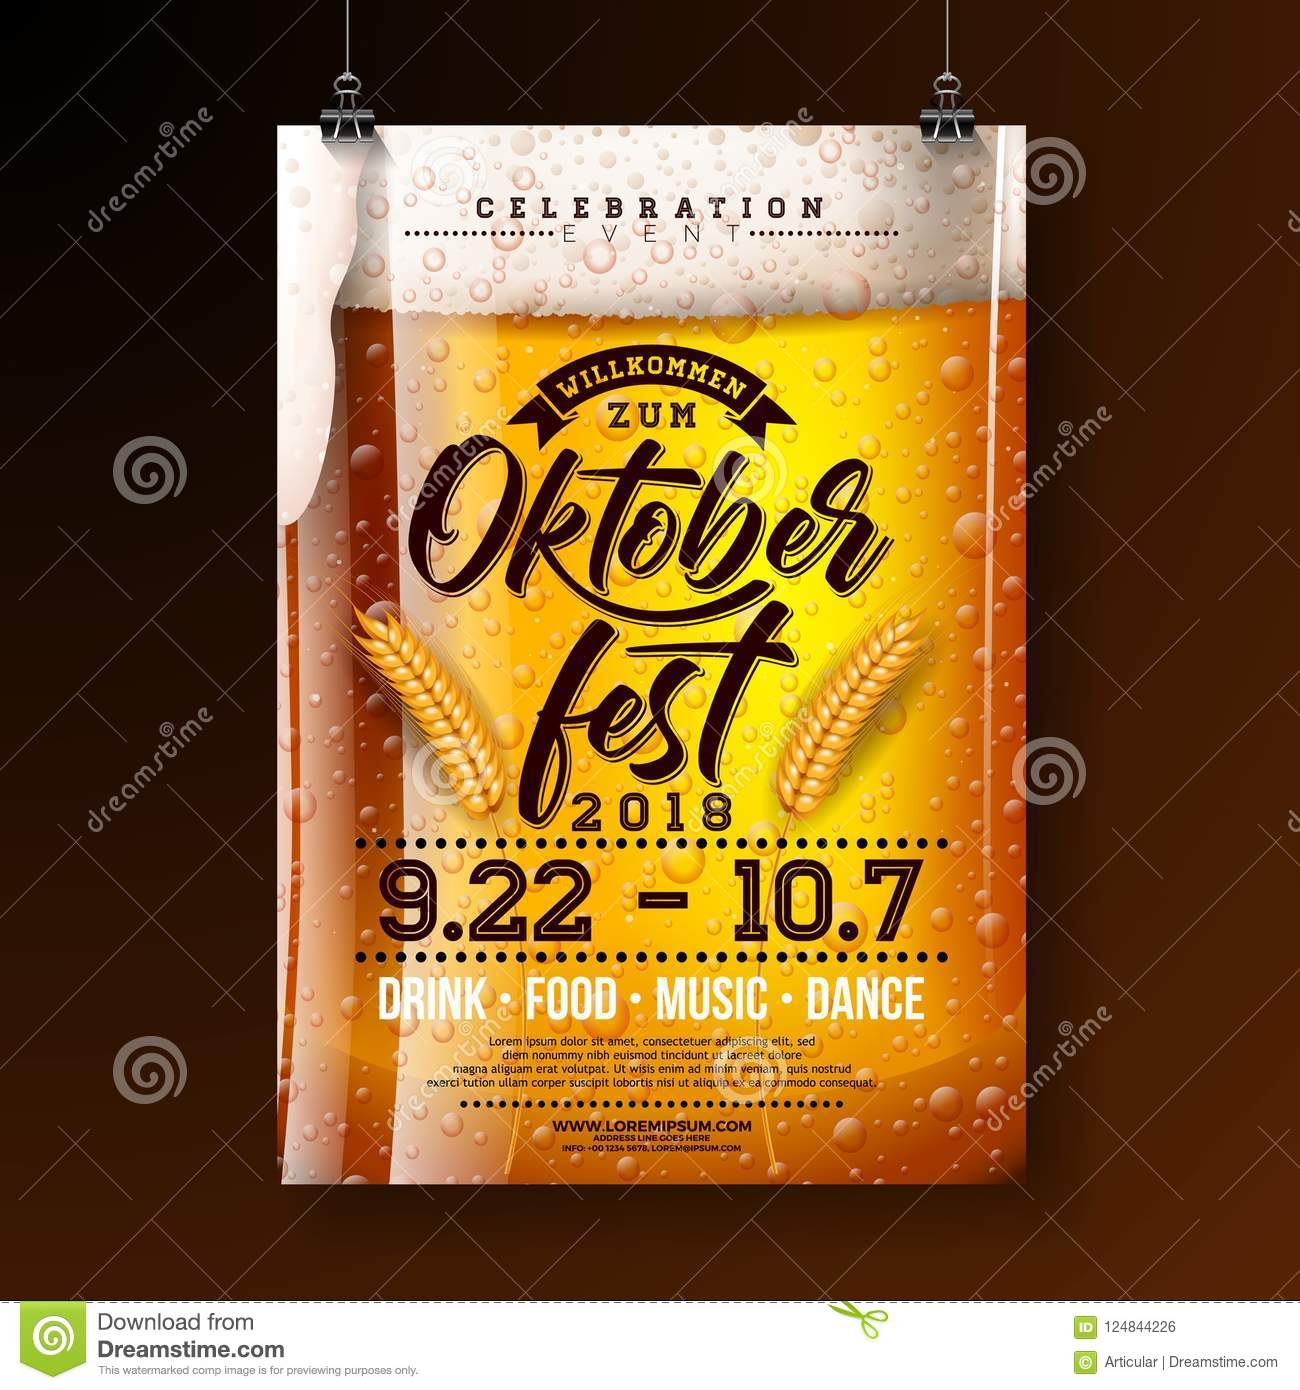 Oktoberfest party poster illustration with fresh lager beer and wheatear on dark background. Vector celebration flyer